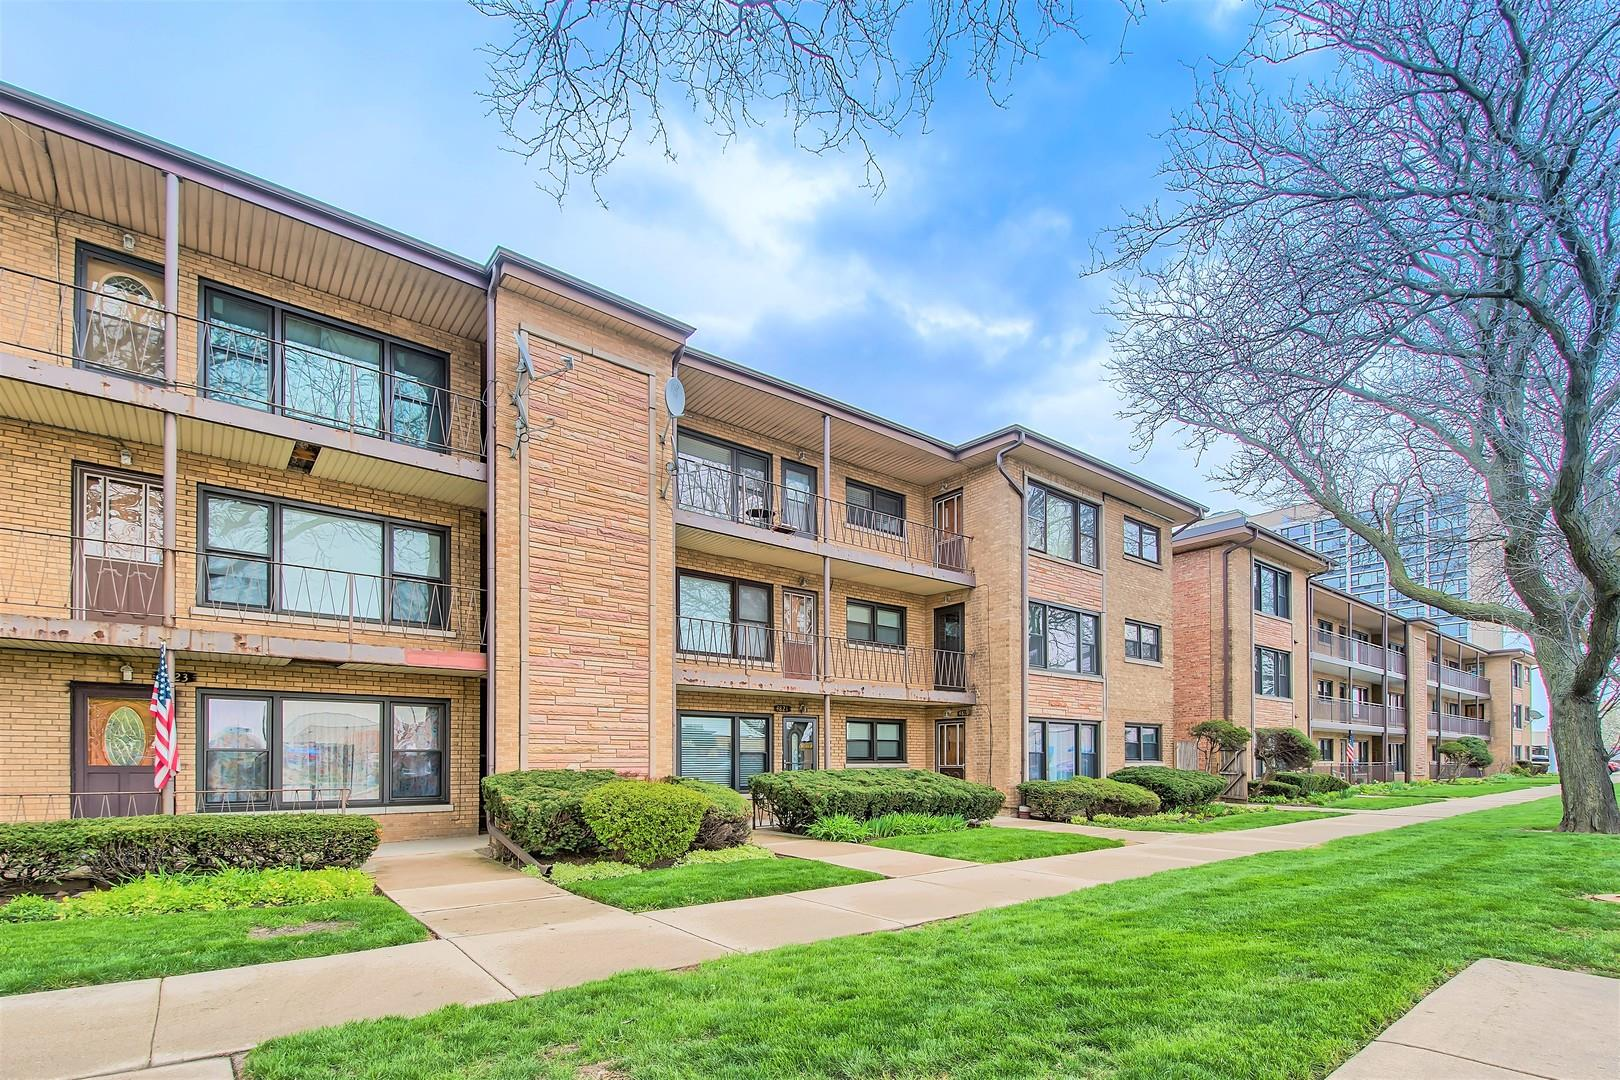 4819 N Harlem Avenue #2, Chicago, IL 60656 - #: 11060701